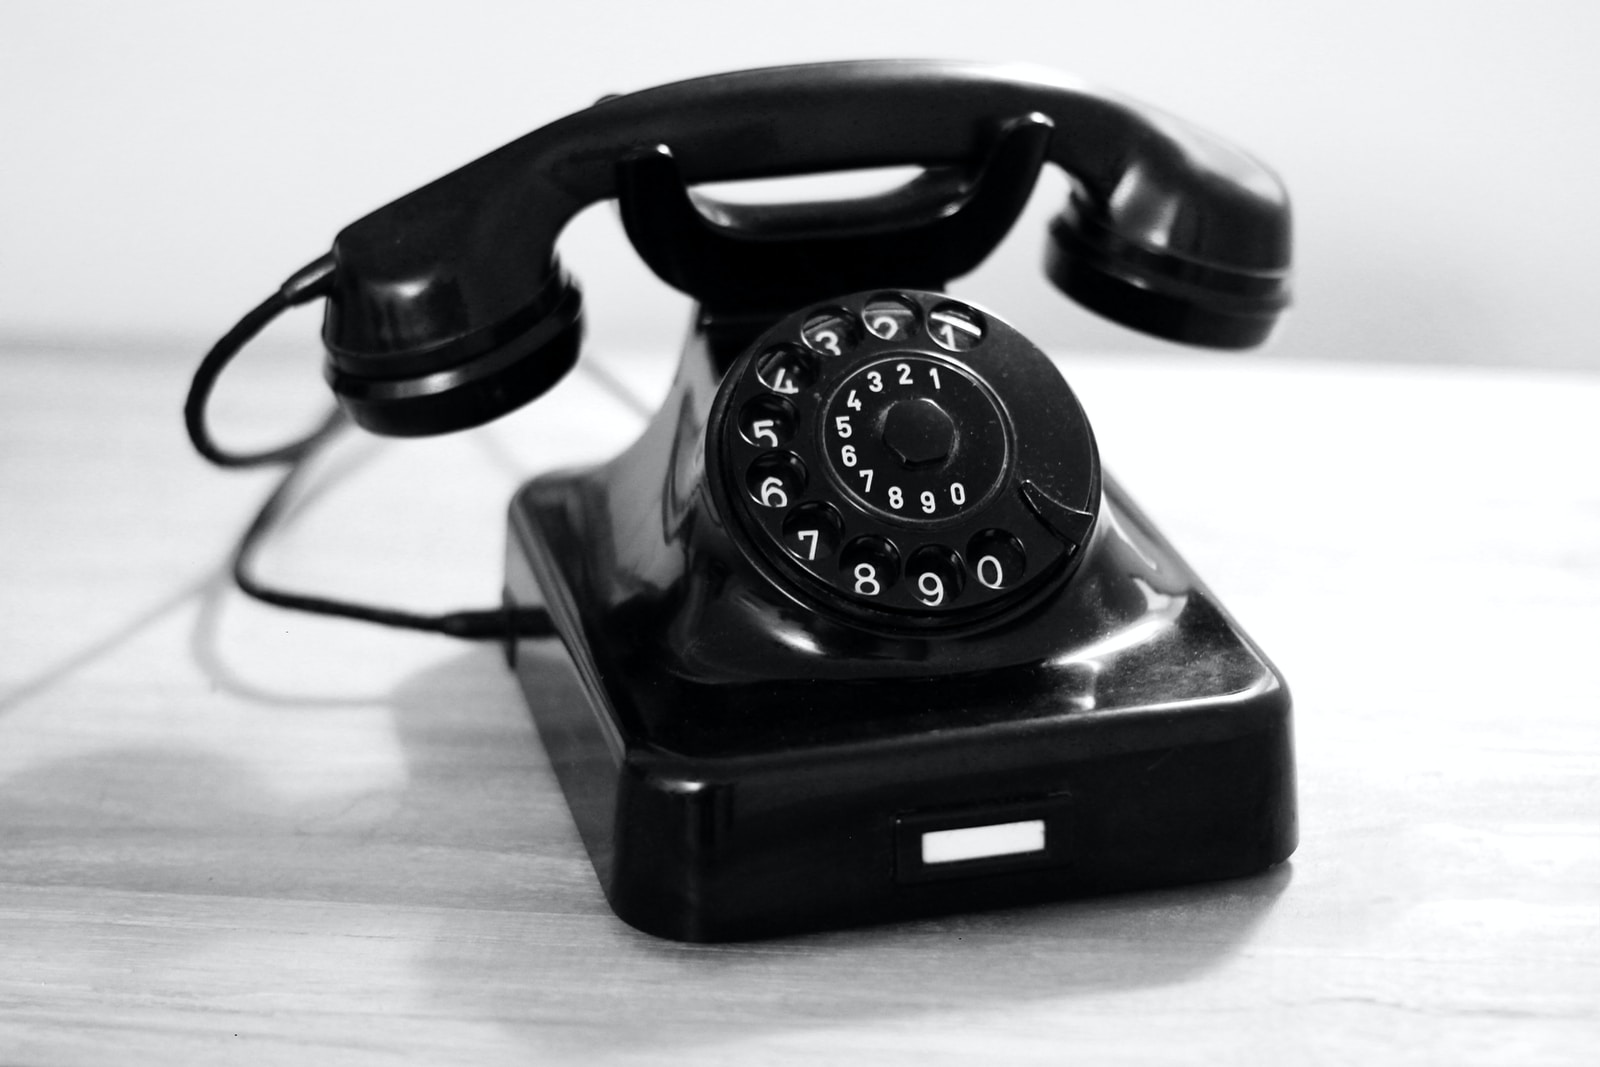 black rotary phone on white table